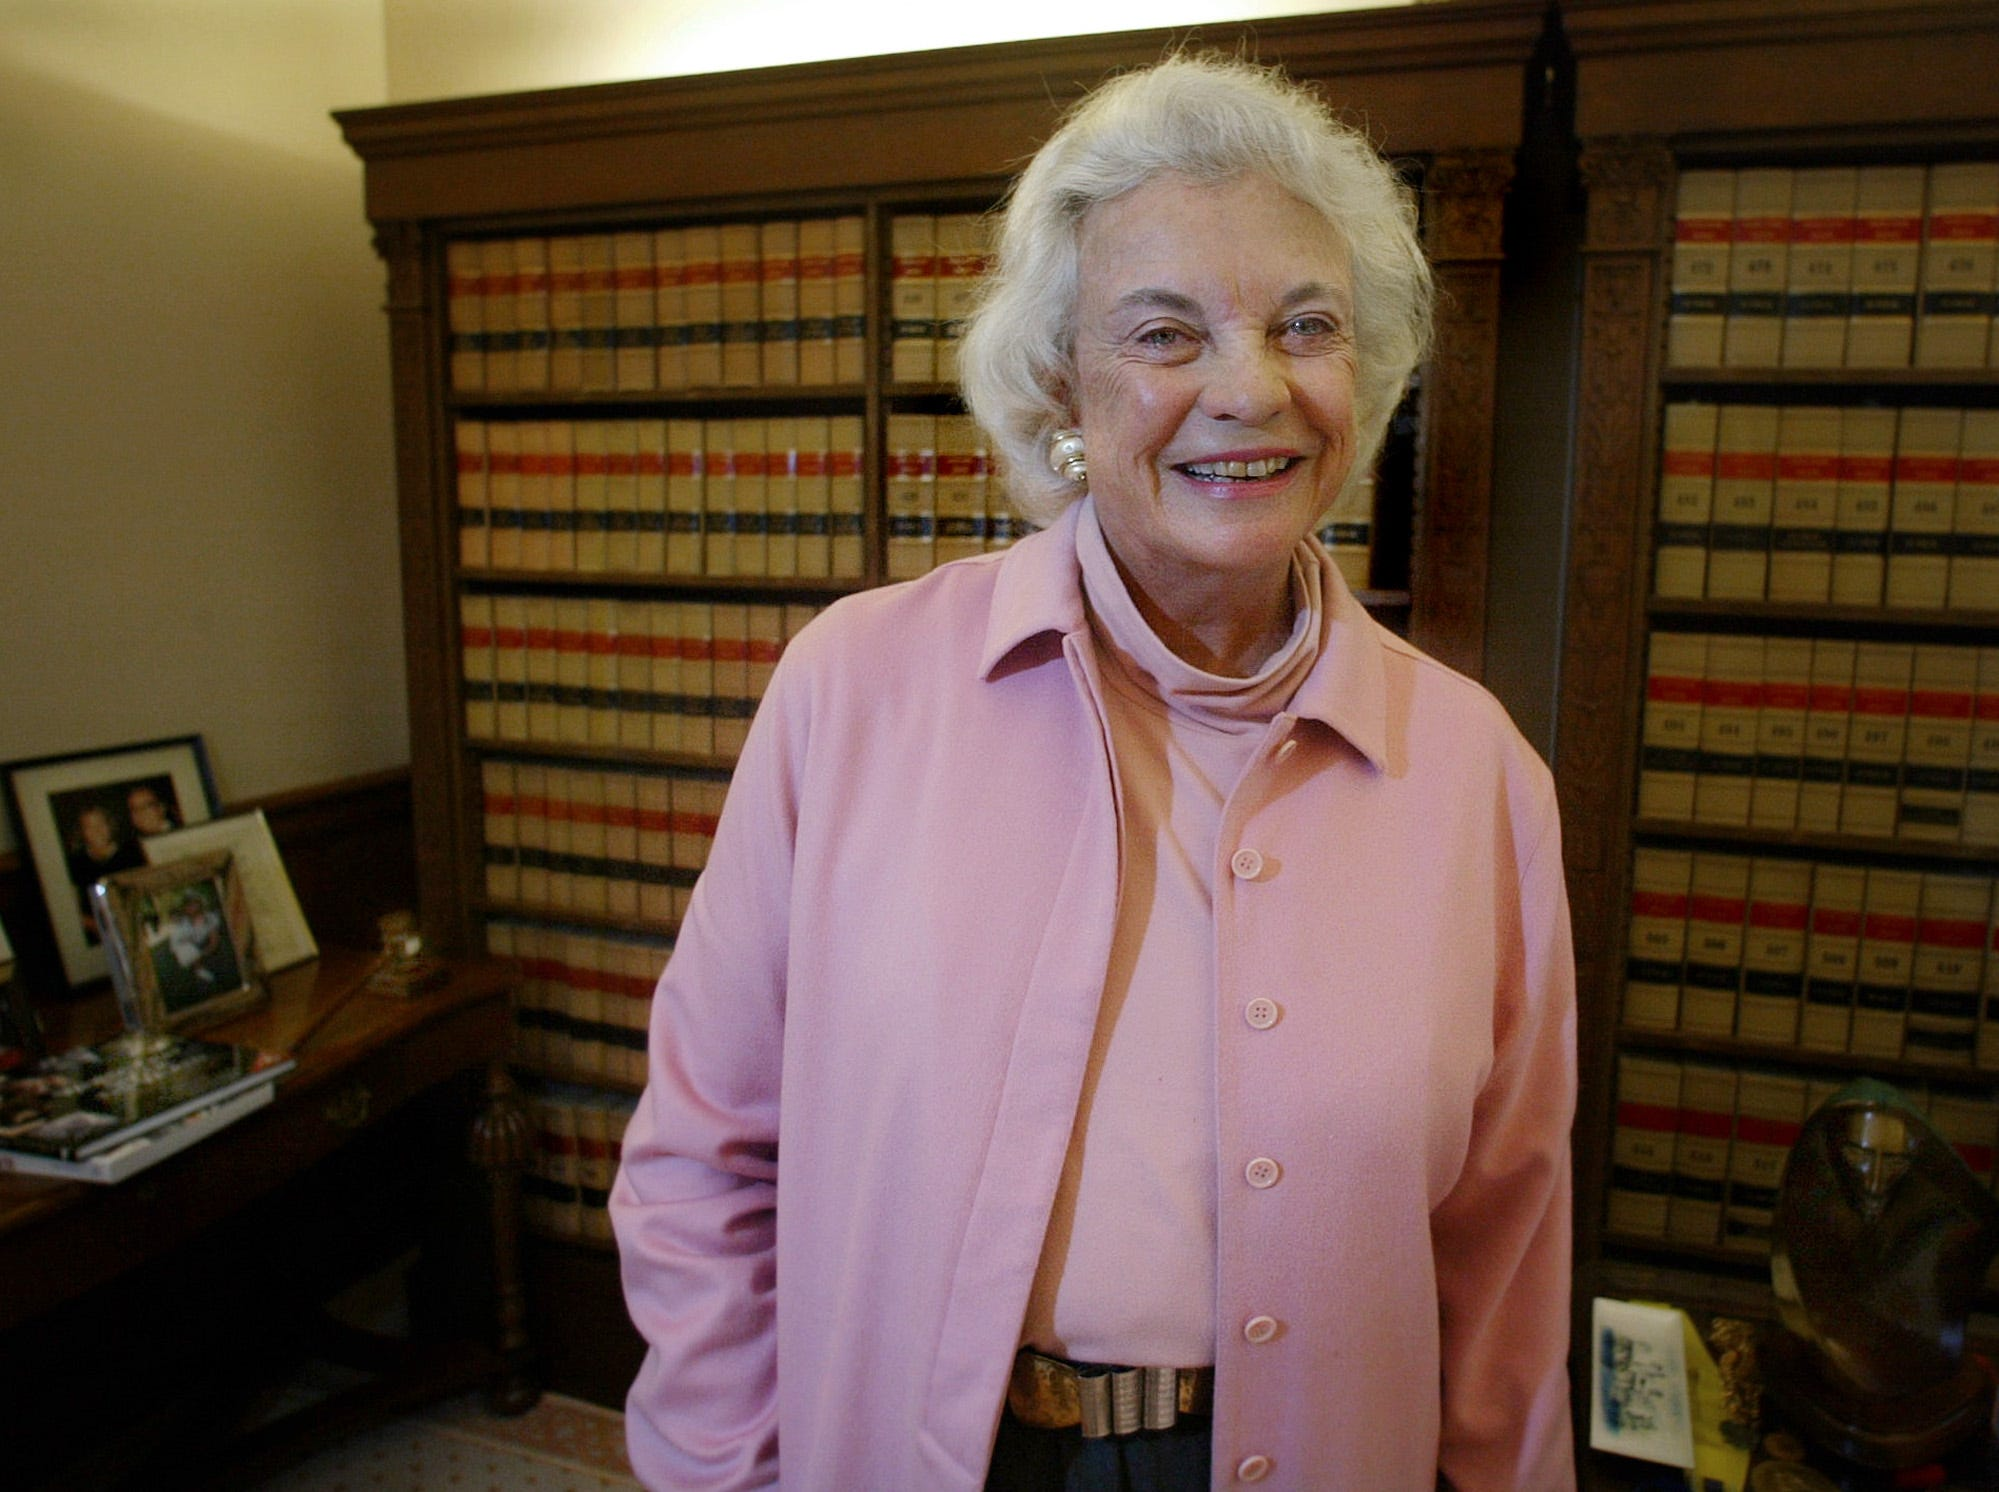 Justice Sandra Day O'Connor, the first woman named to the United States Supreme Court, is interviewed by the Associated Press in her office at the Supreme Court, Monday, April 7, 2003, in Washington.